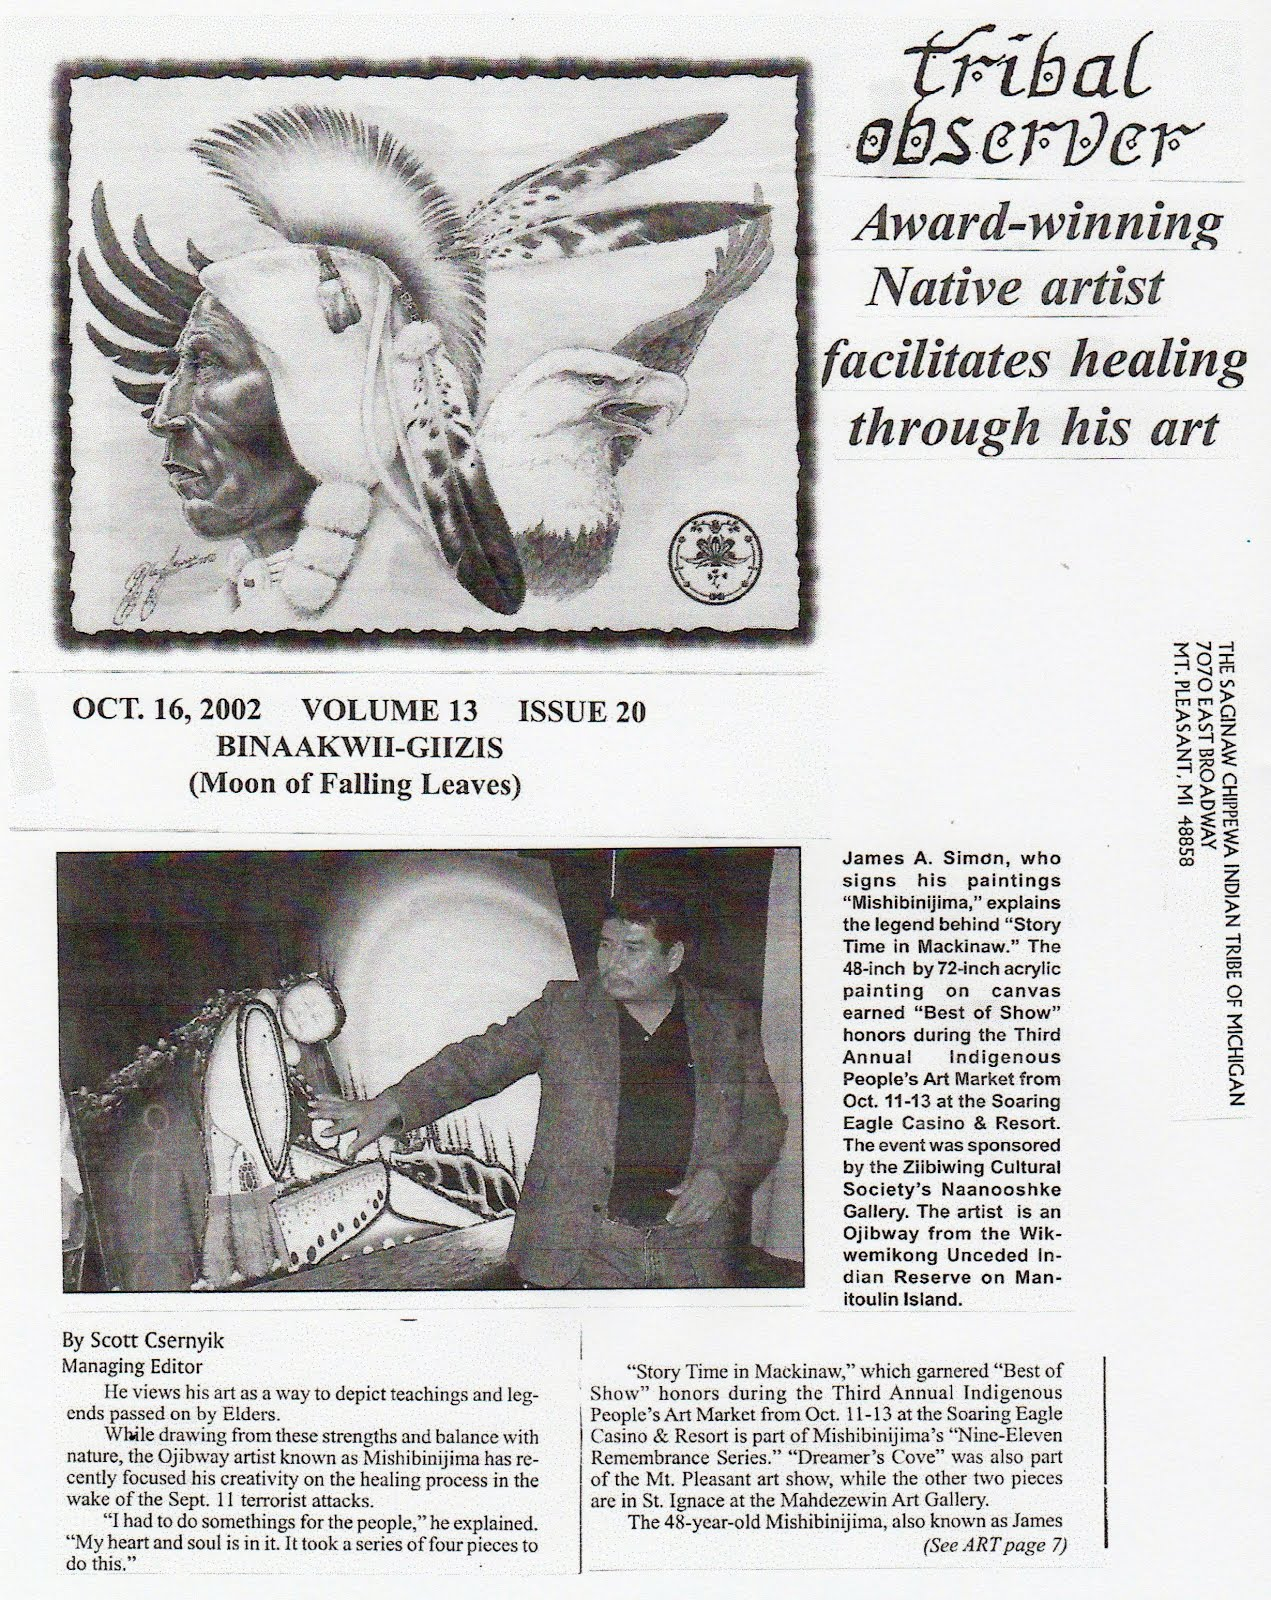 MICHIGAN ART JURY - 2002